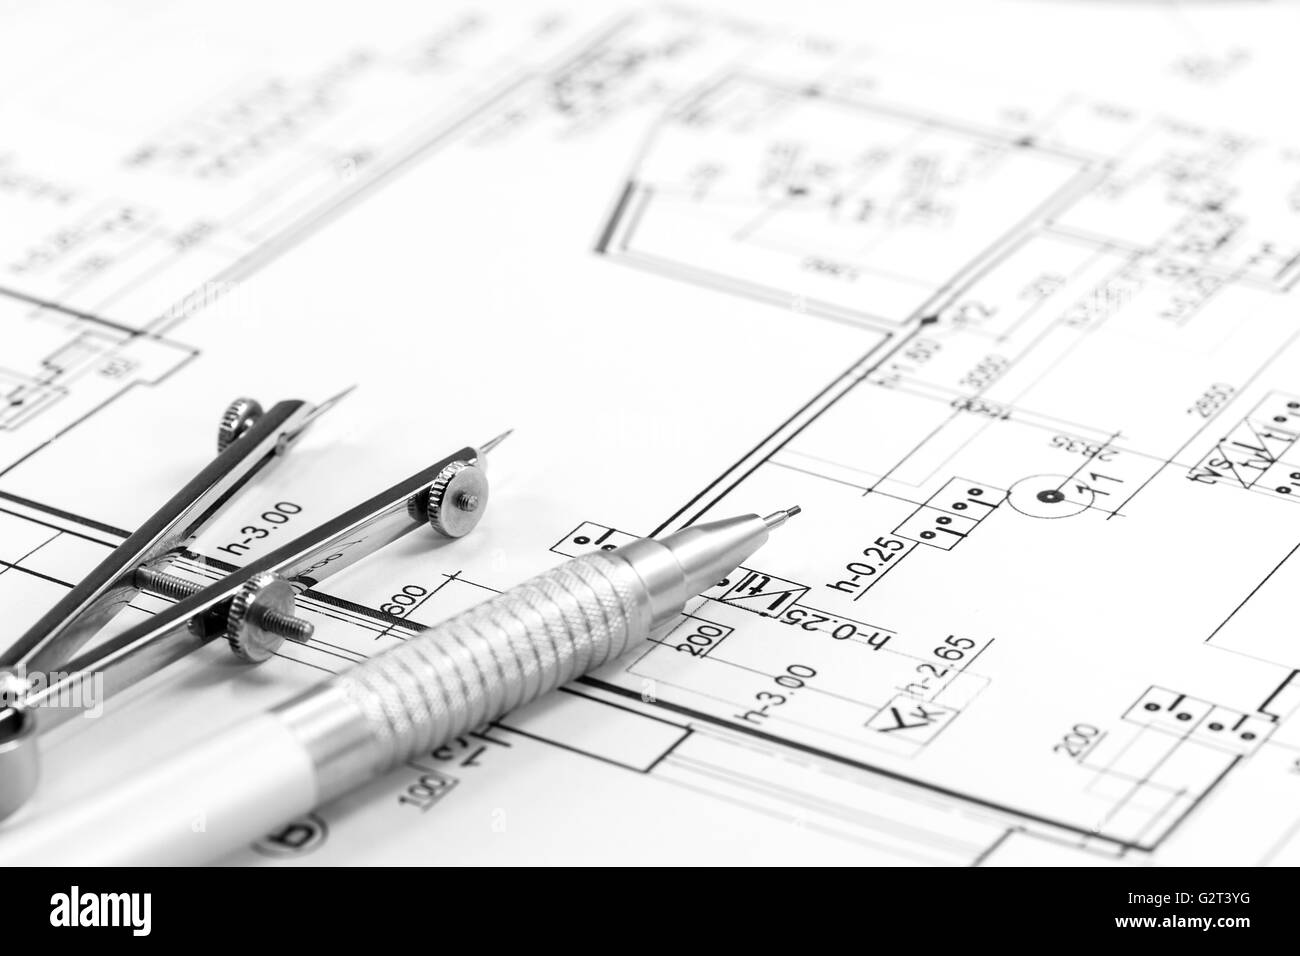 house building construction plans with calculator pencil and house building construction plans with calculator pencil and compass